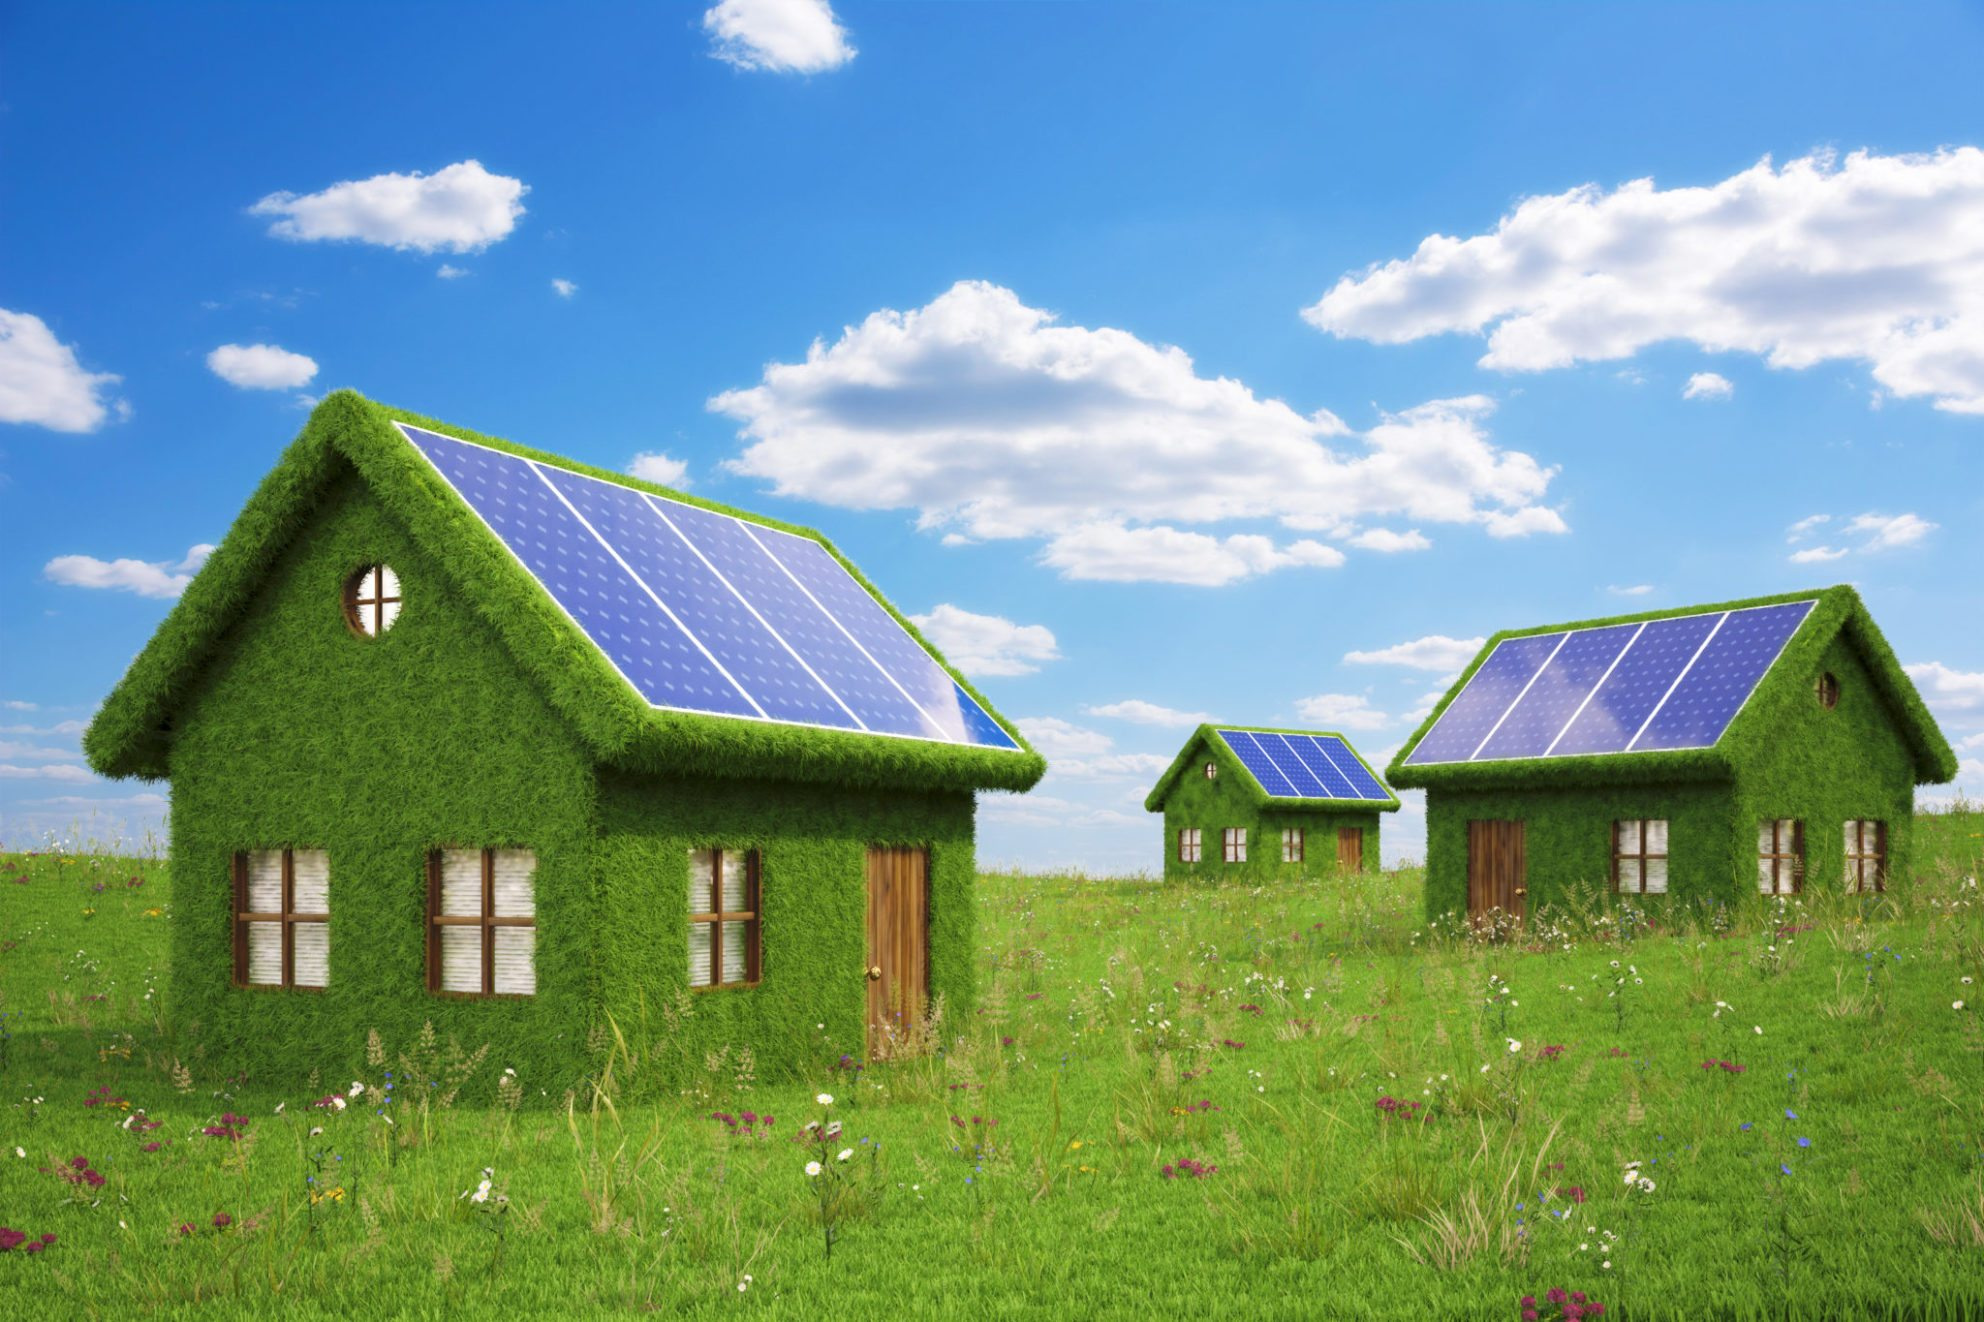 Industry push to raise visibility of home energy efficiency improvements